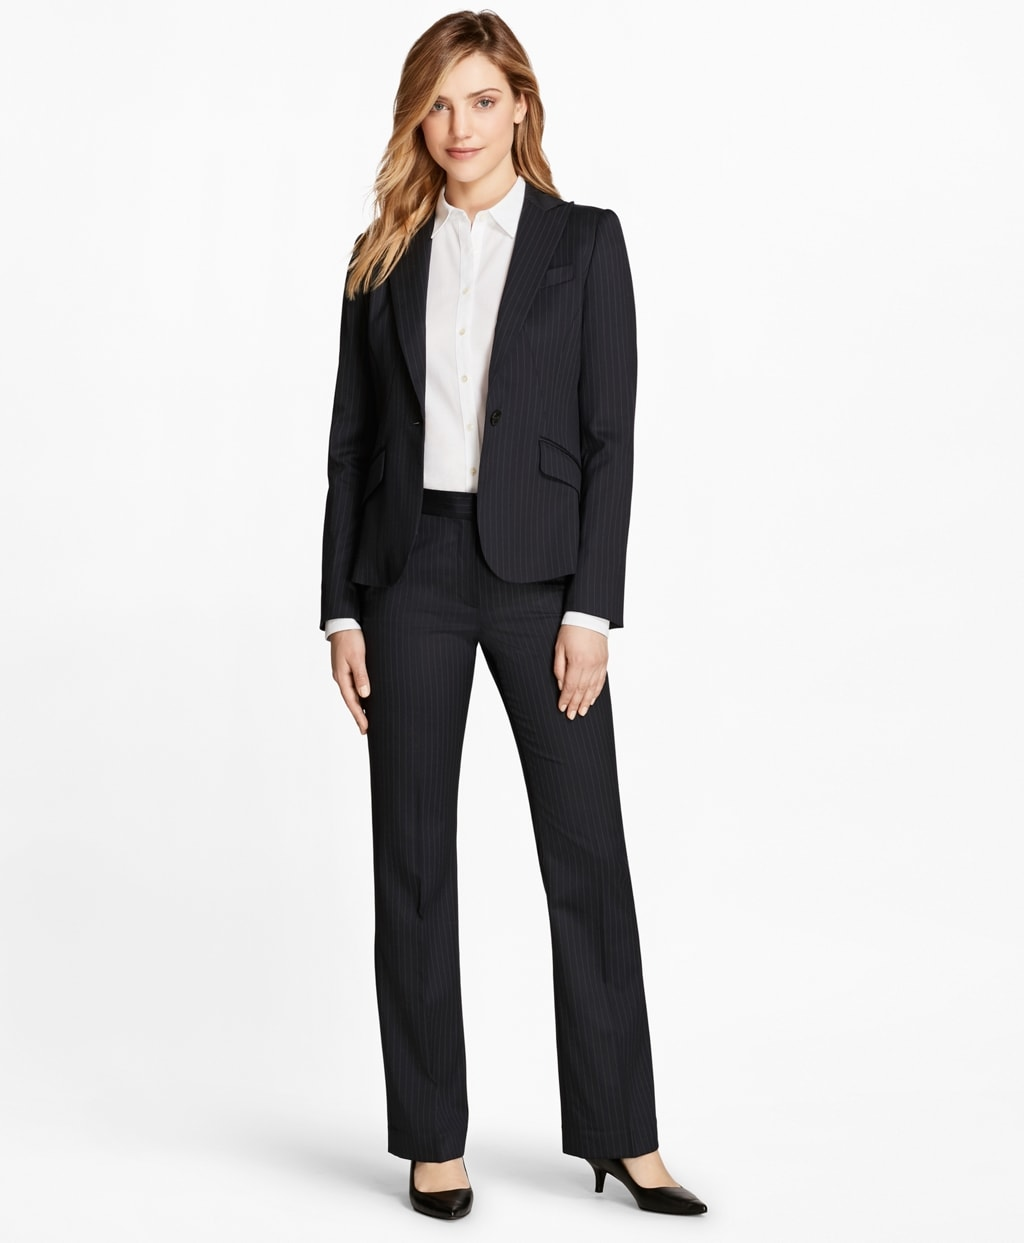 How To Dress Professionally Business Dress Code Basics College Fashion